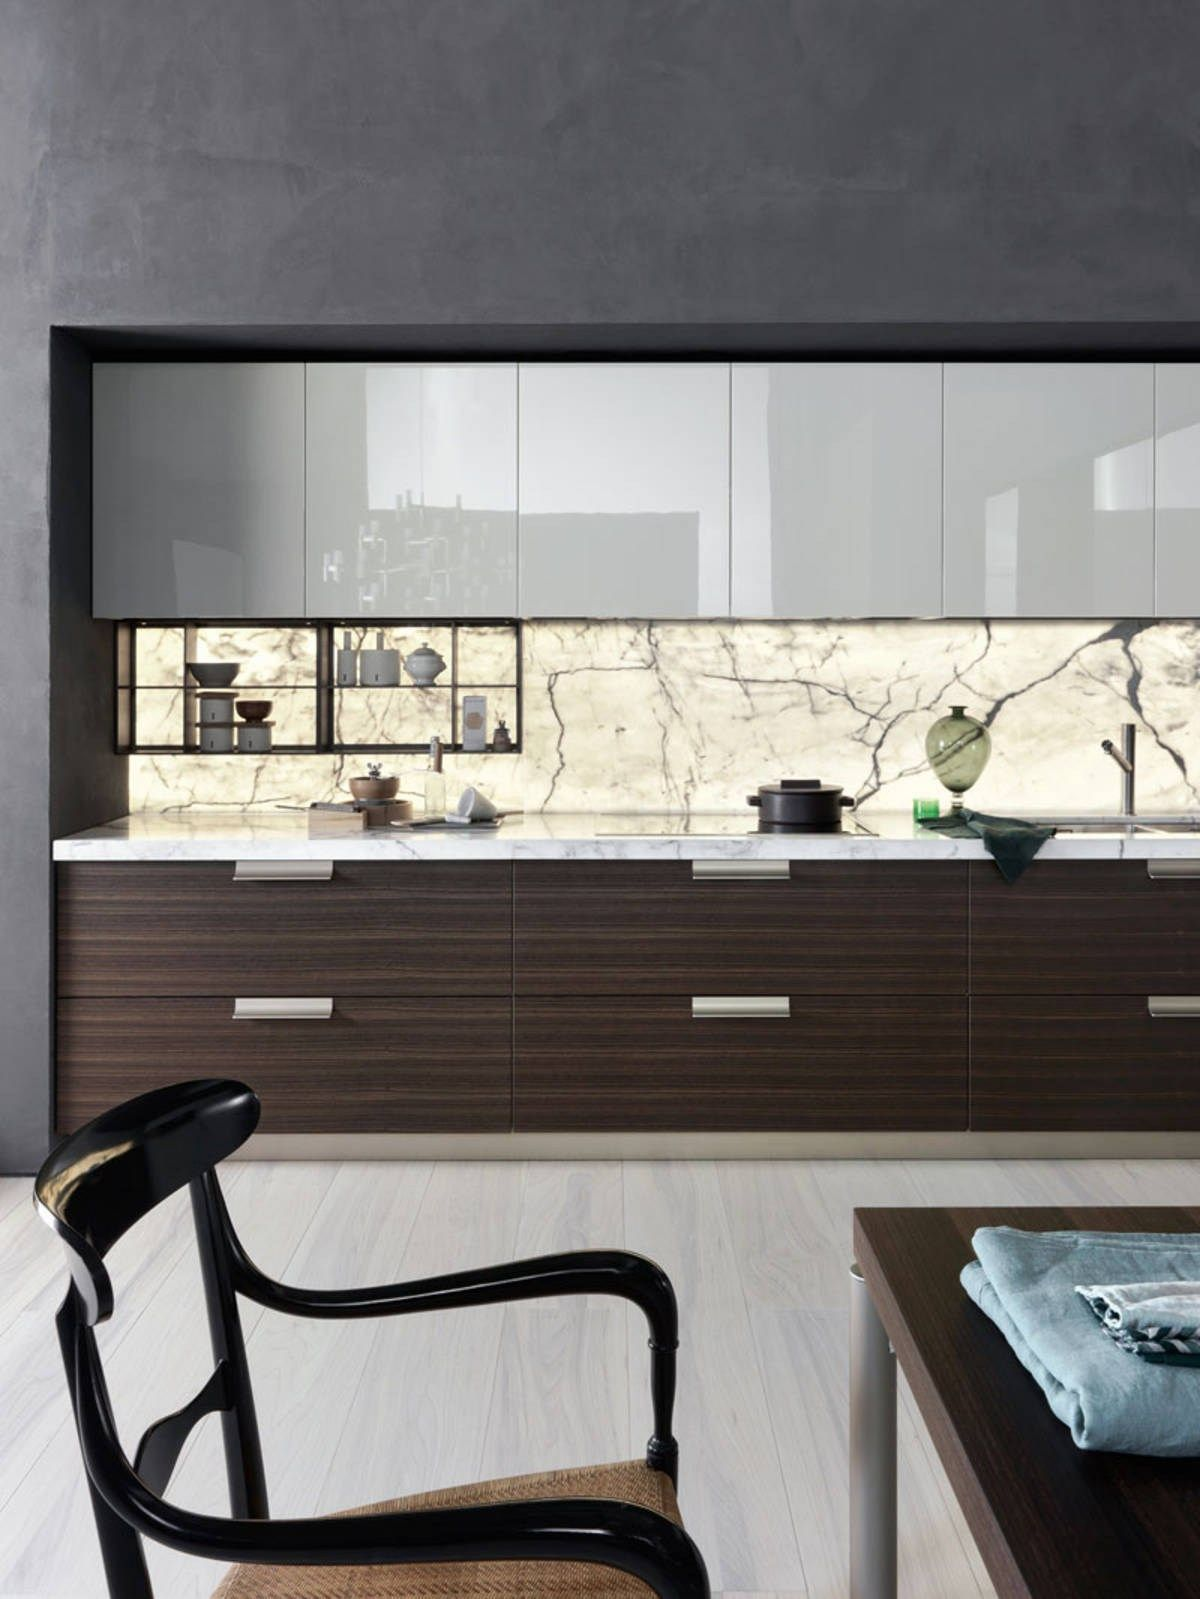 Modular Fitted Kitchen Indada By Dada Design Nicola Gallizia  # Muebles Y Cocinas Daxa